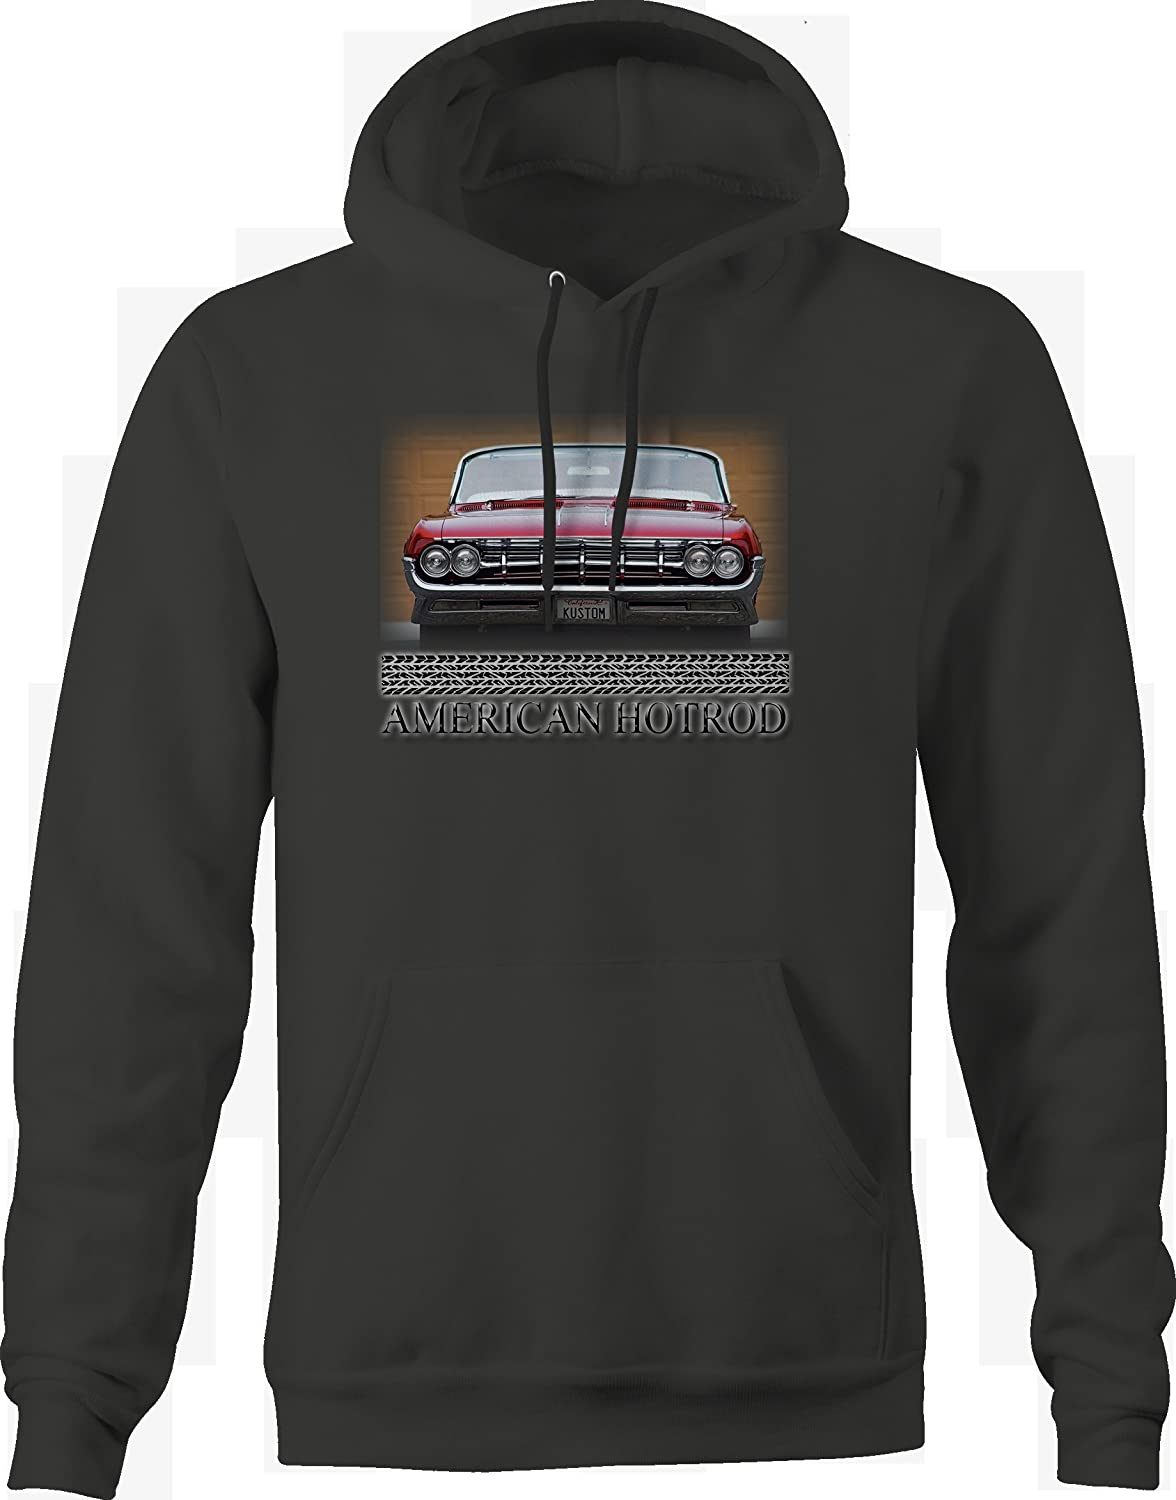 American Hotrod Classic Custom Convertible Headlights Grill Hoodie for Men